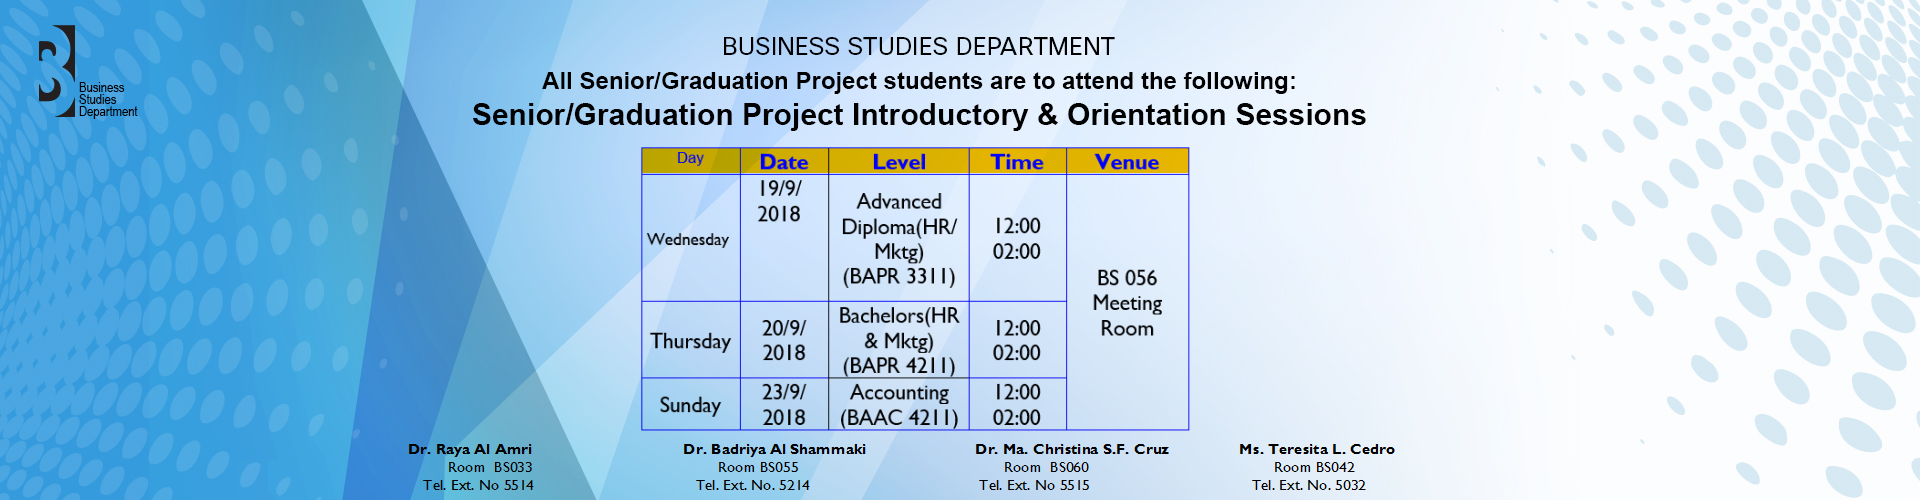 Business - RIENTATION FOR SENIOR/GRADUATION PROJECT